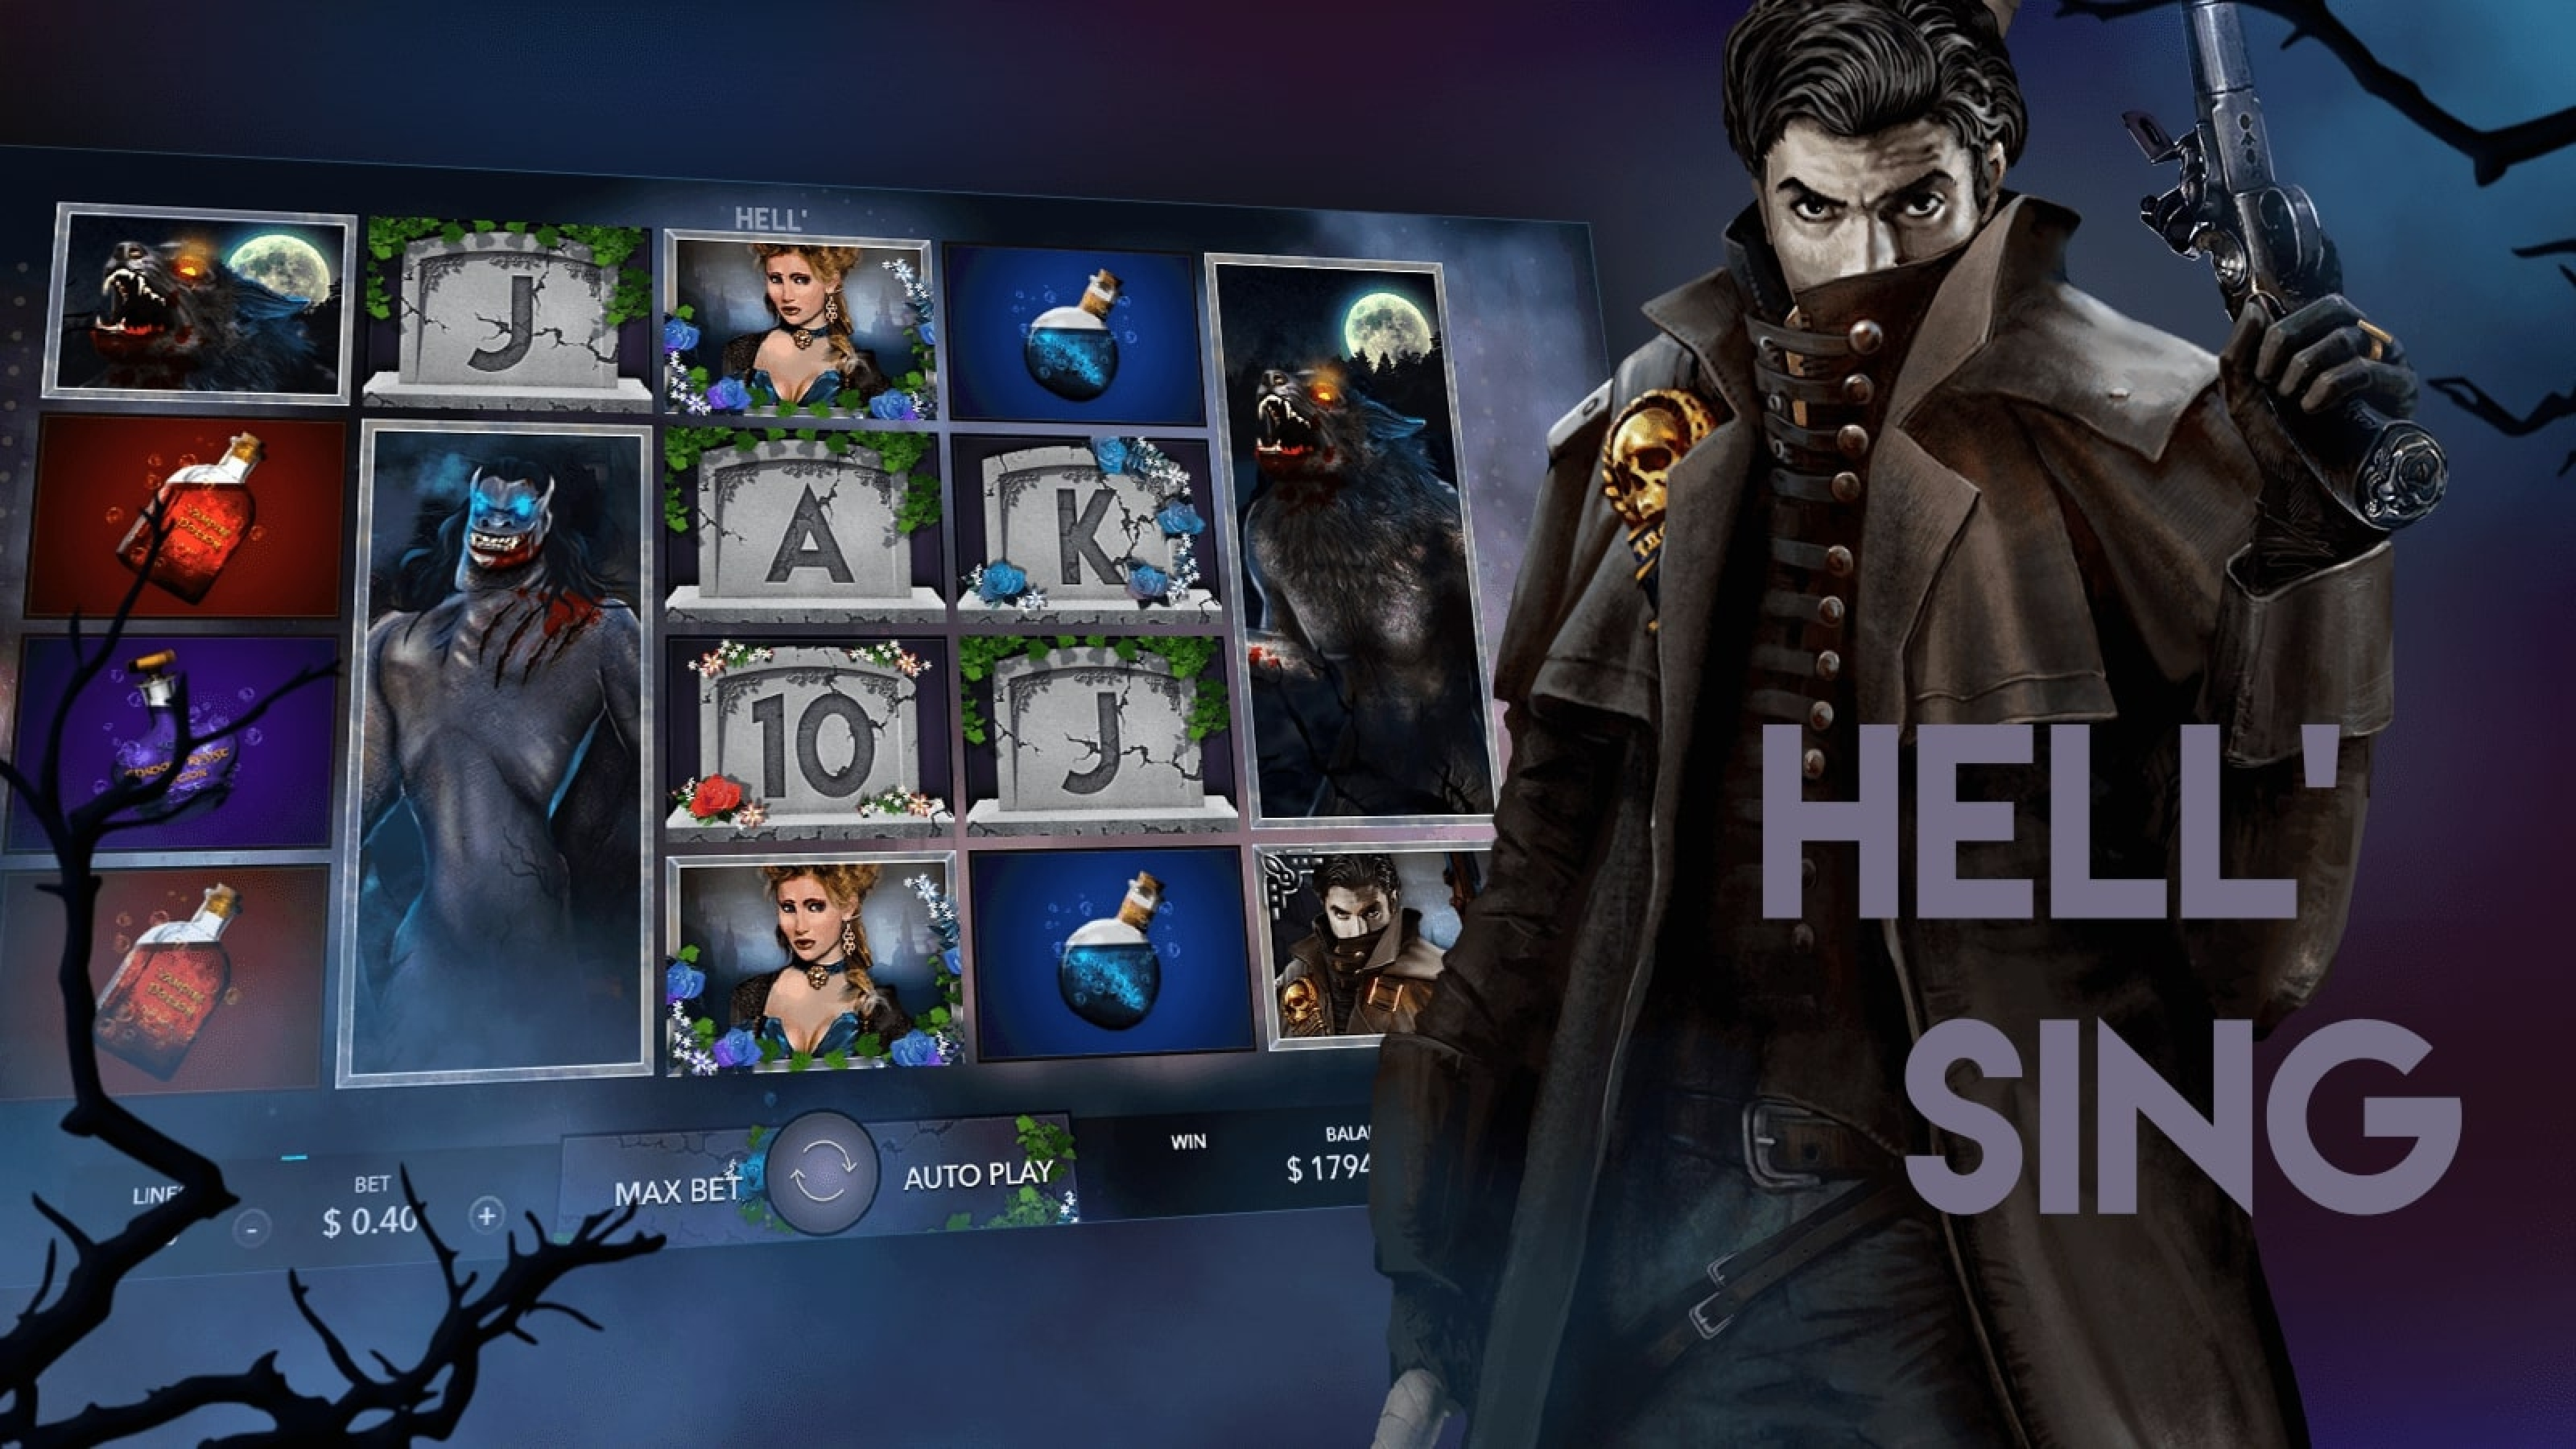 The Hell'Sing Online Slot Demo Game by Mascot Gaming